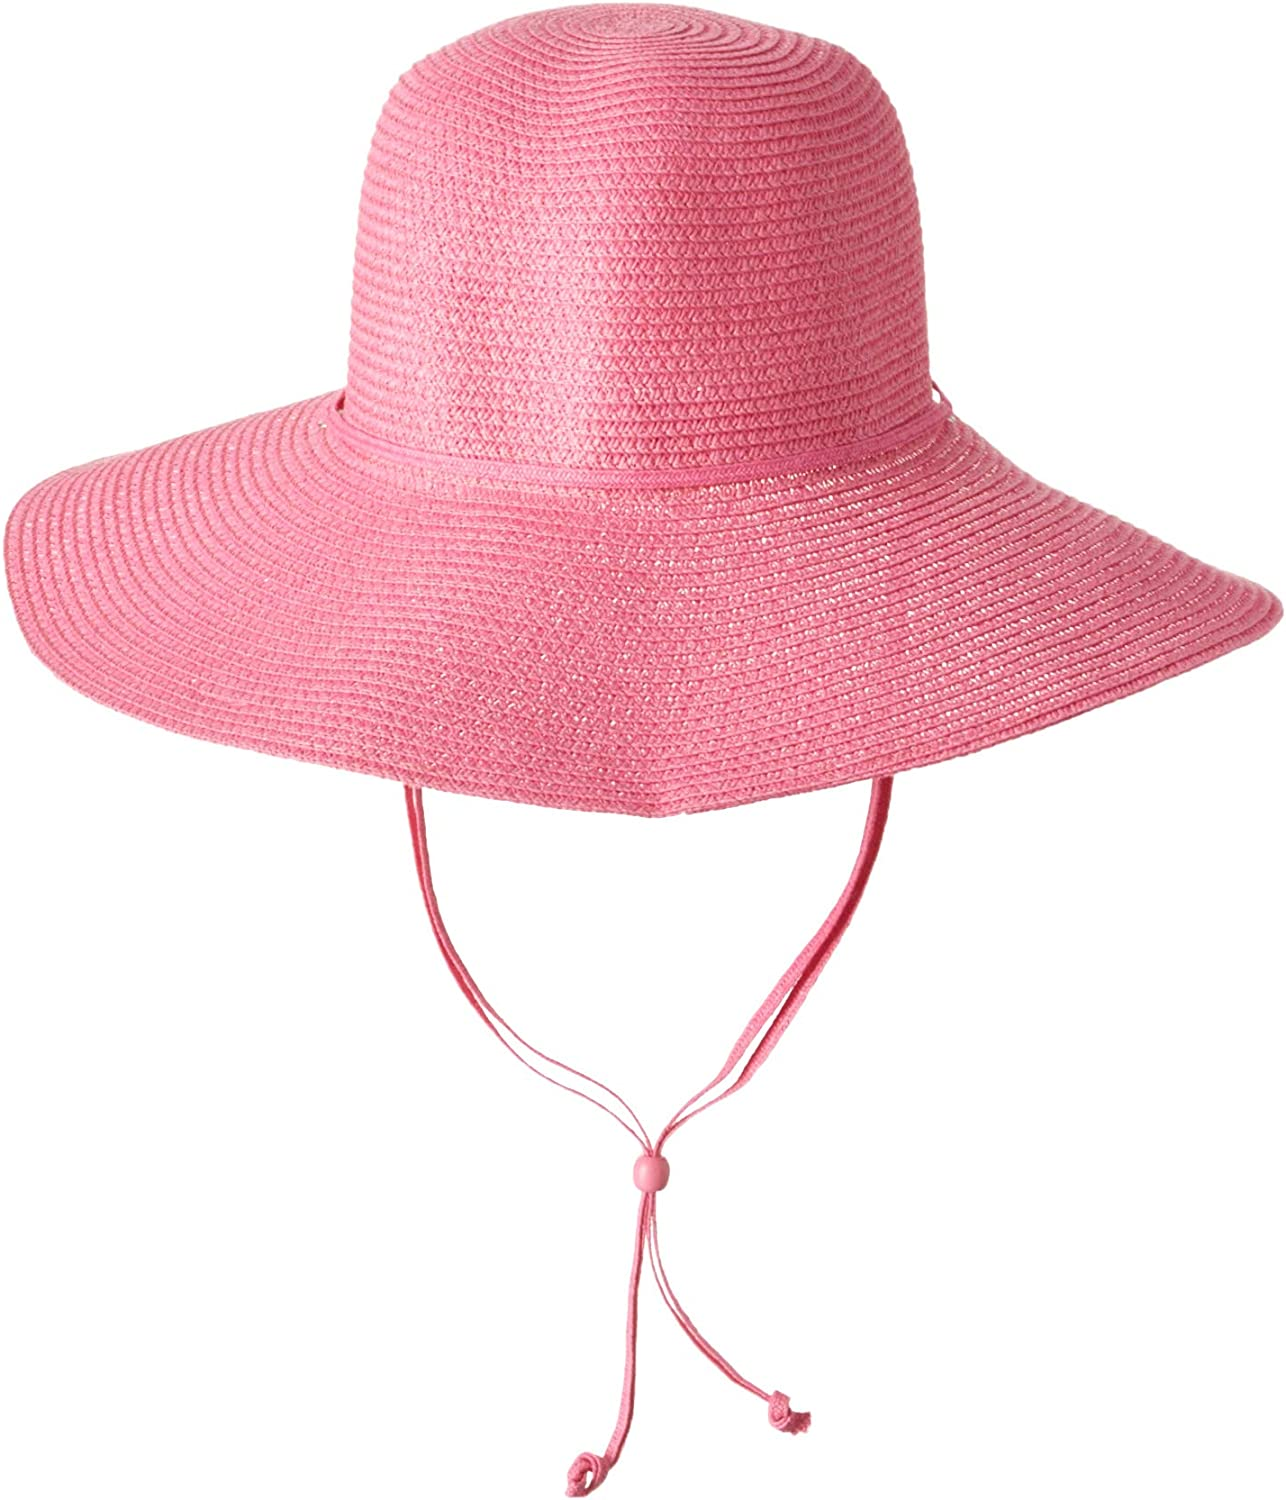 Midwest Gloves and Gear 42A6P-EA-AZ-6 Ladies Outdoor Straw Hat, Pink